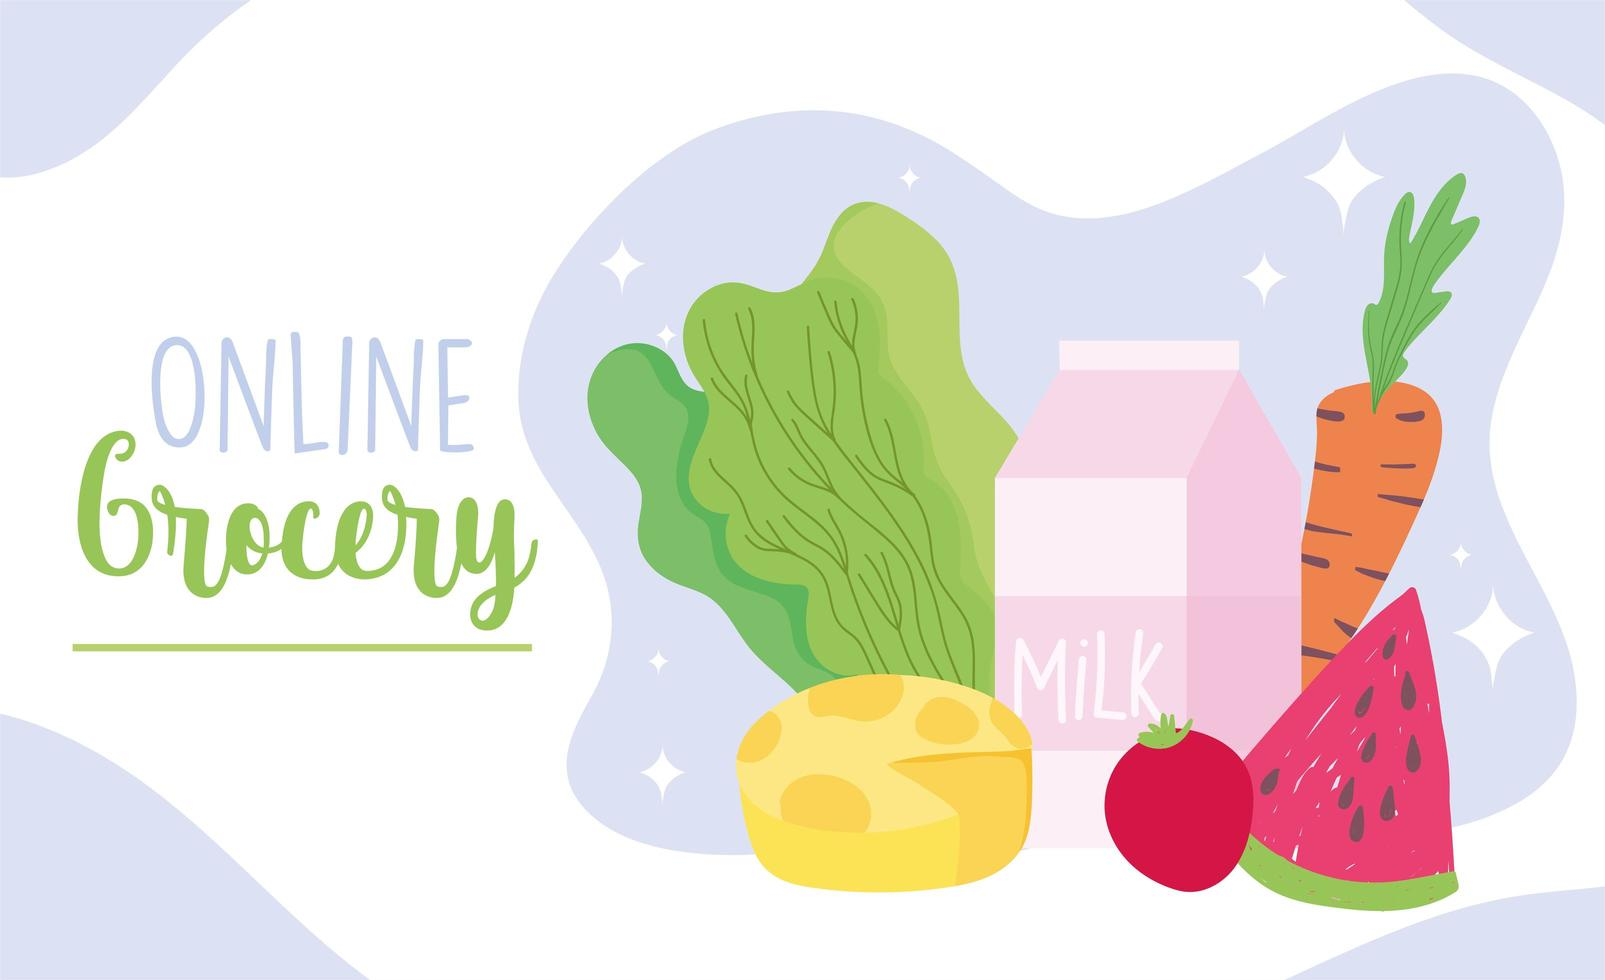 Online grocery shopping banner template with produce and dairy products vector